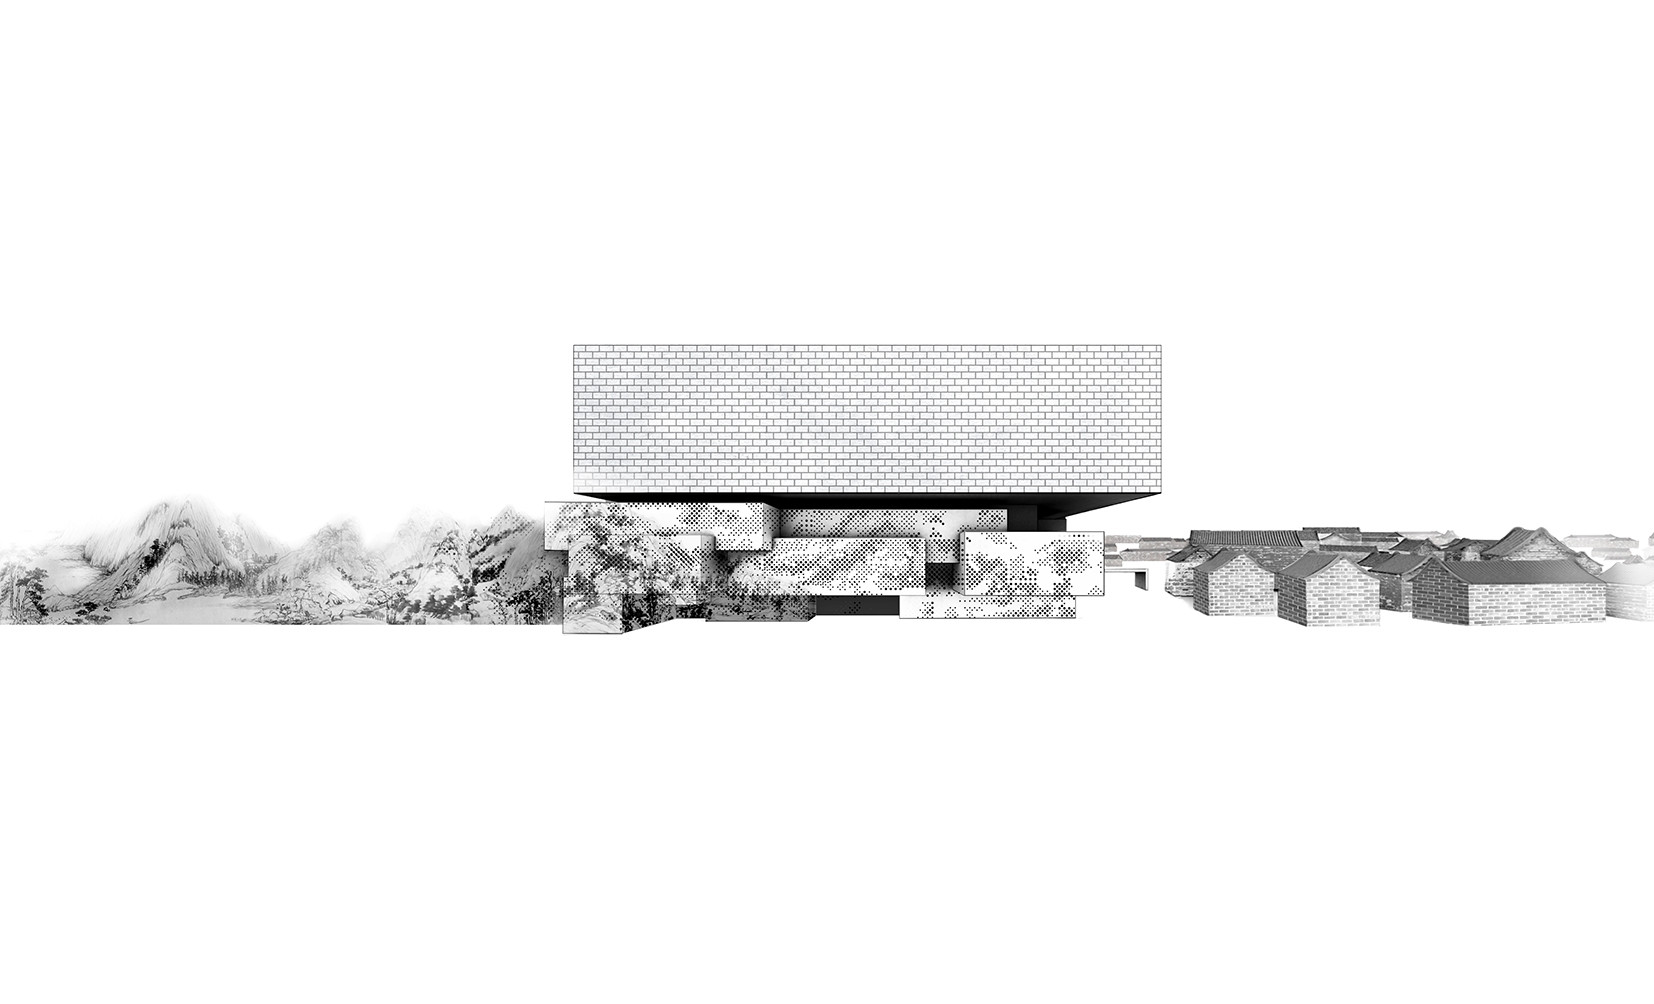 """Guardian Art Center by Büro Ole Scheeren, diagram of perforations derived from """"Dwelling in the Fuchun Mountains"""" painting. Image Courtesy of Büro Ole Scheeren"""